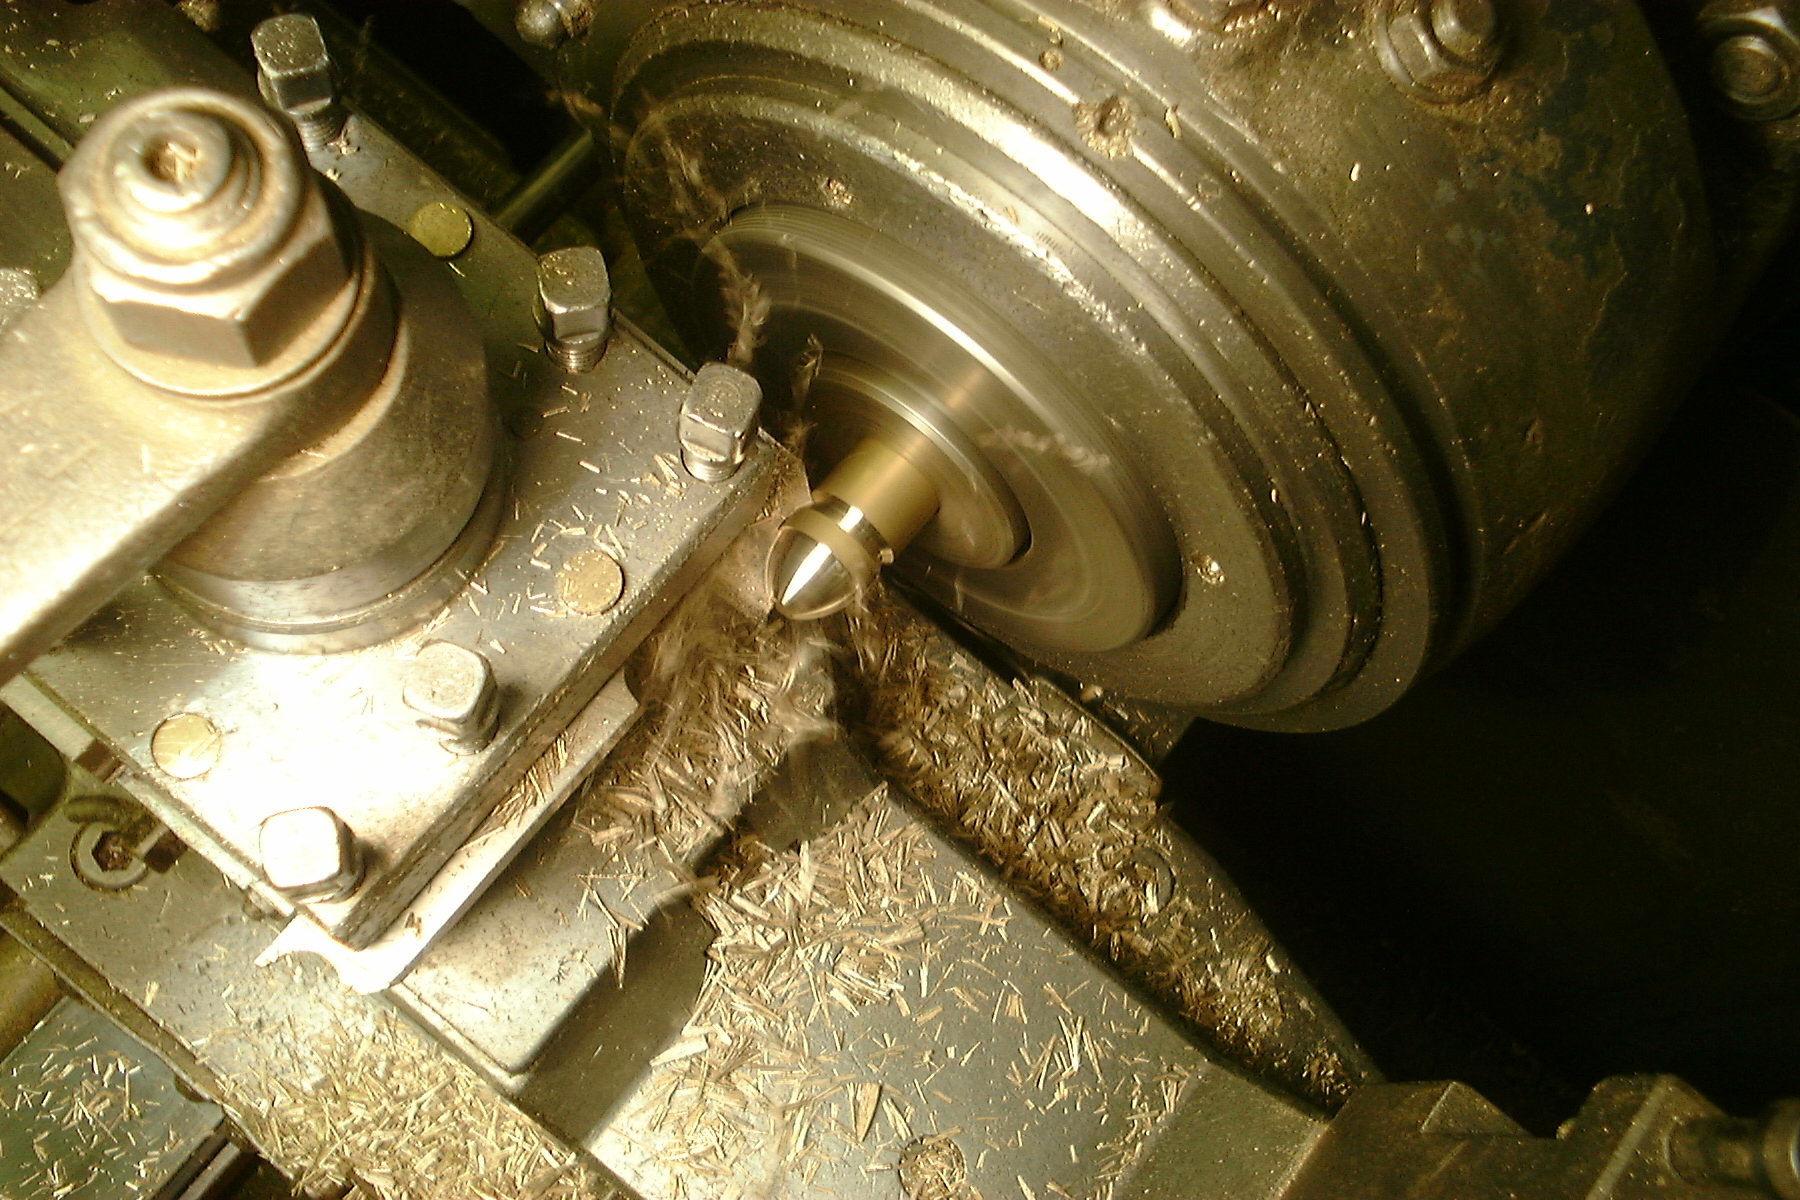 Solid Premier stair rods being turned on a lathe - the initial stage of production.